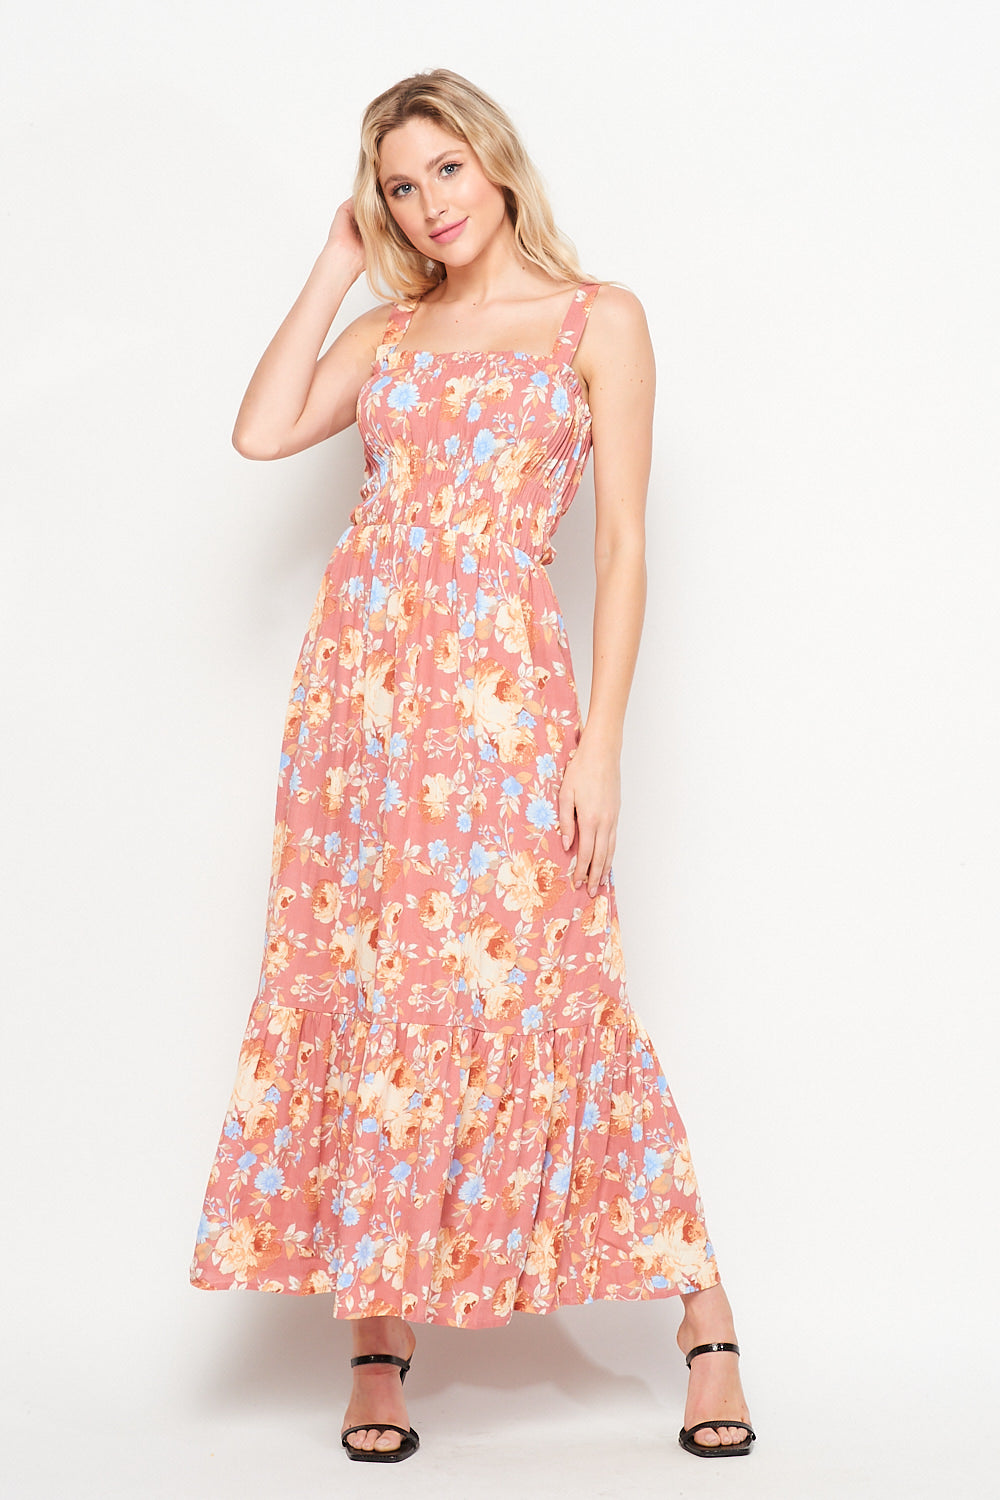 Spring Awakening Maxi Dress w/ Pocket | Peach Floral - Velvet Torch